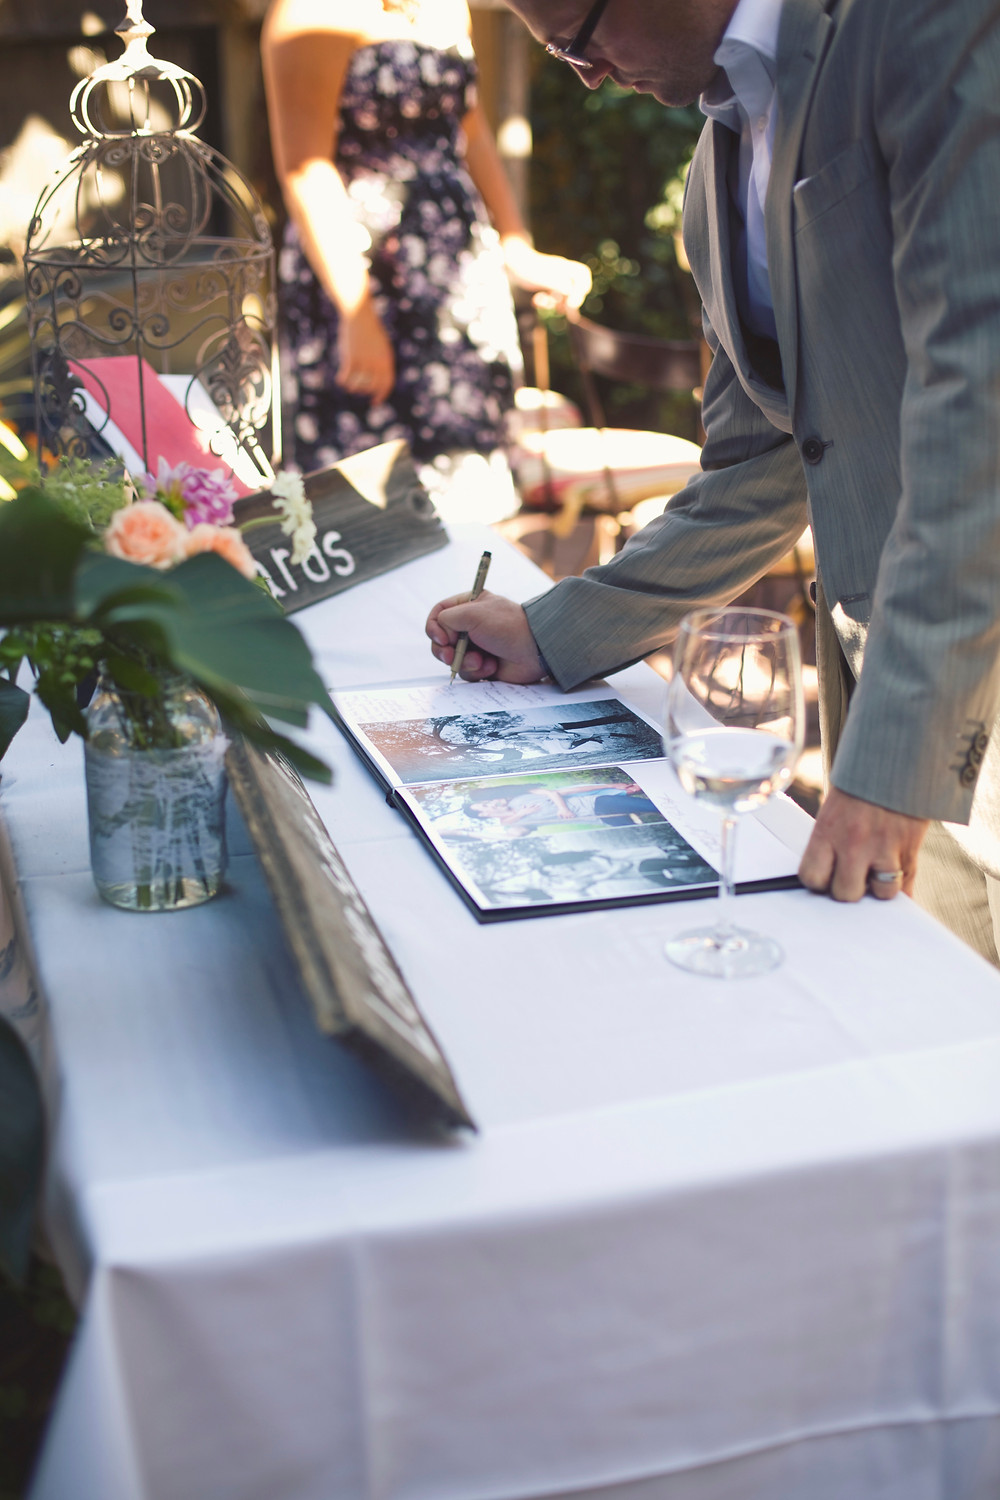 A guest book being signed on a table next to a vase of flowers at a rustic iItalian Inspired wedding.